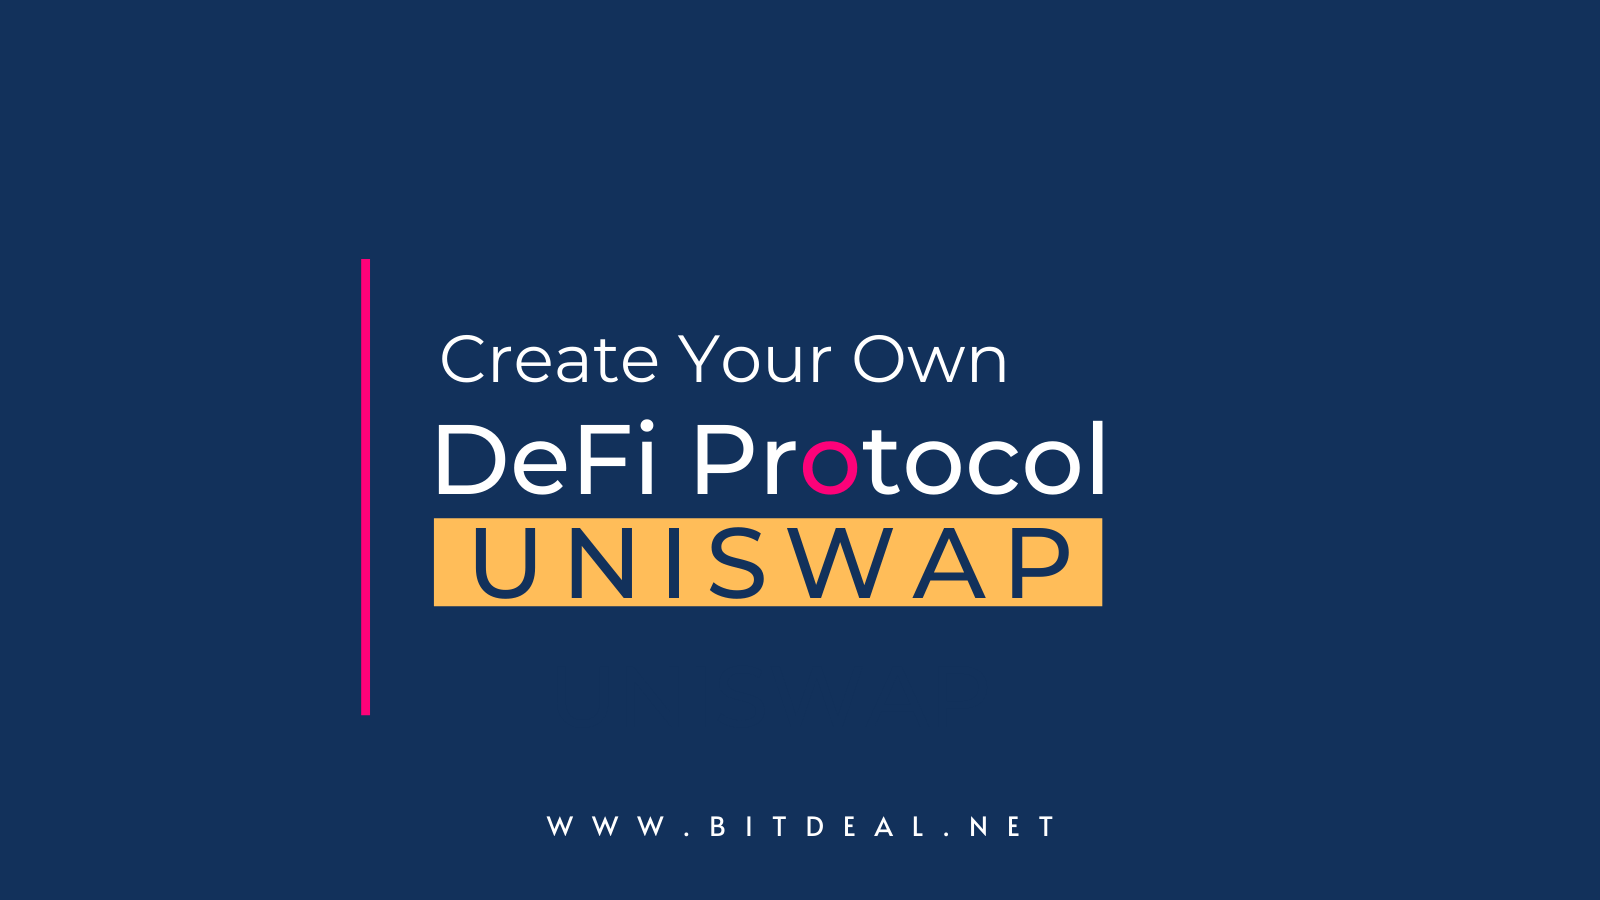 DeFi Protocol Development - Create Your Own DeFi Protocol like Uniswap